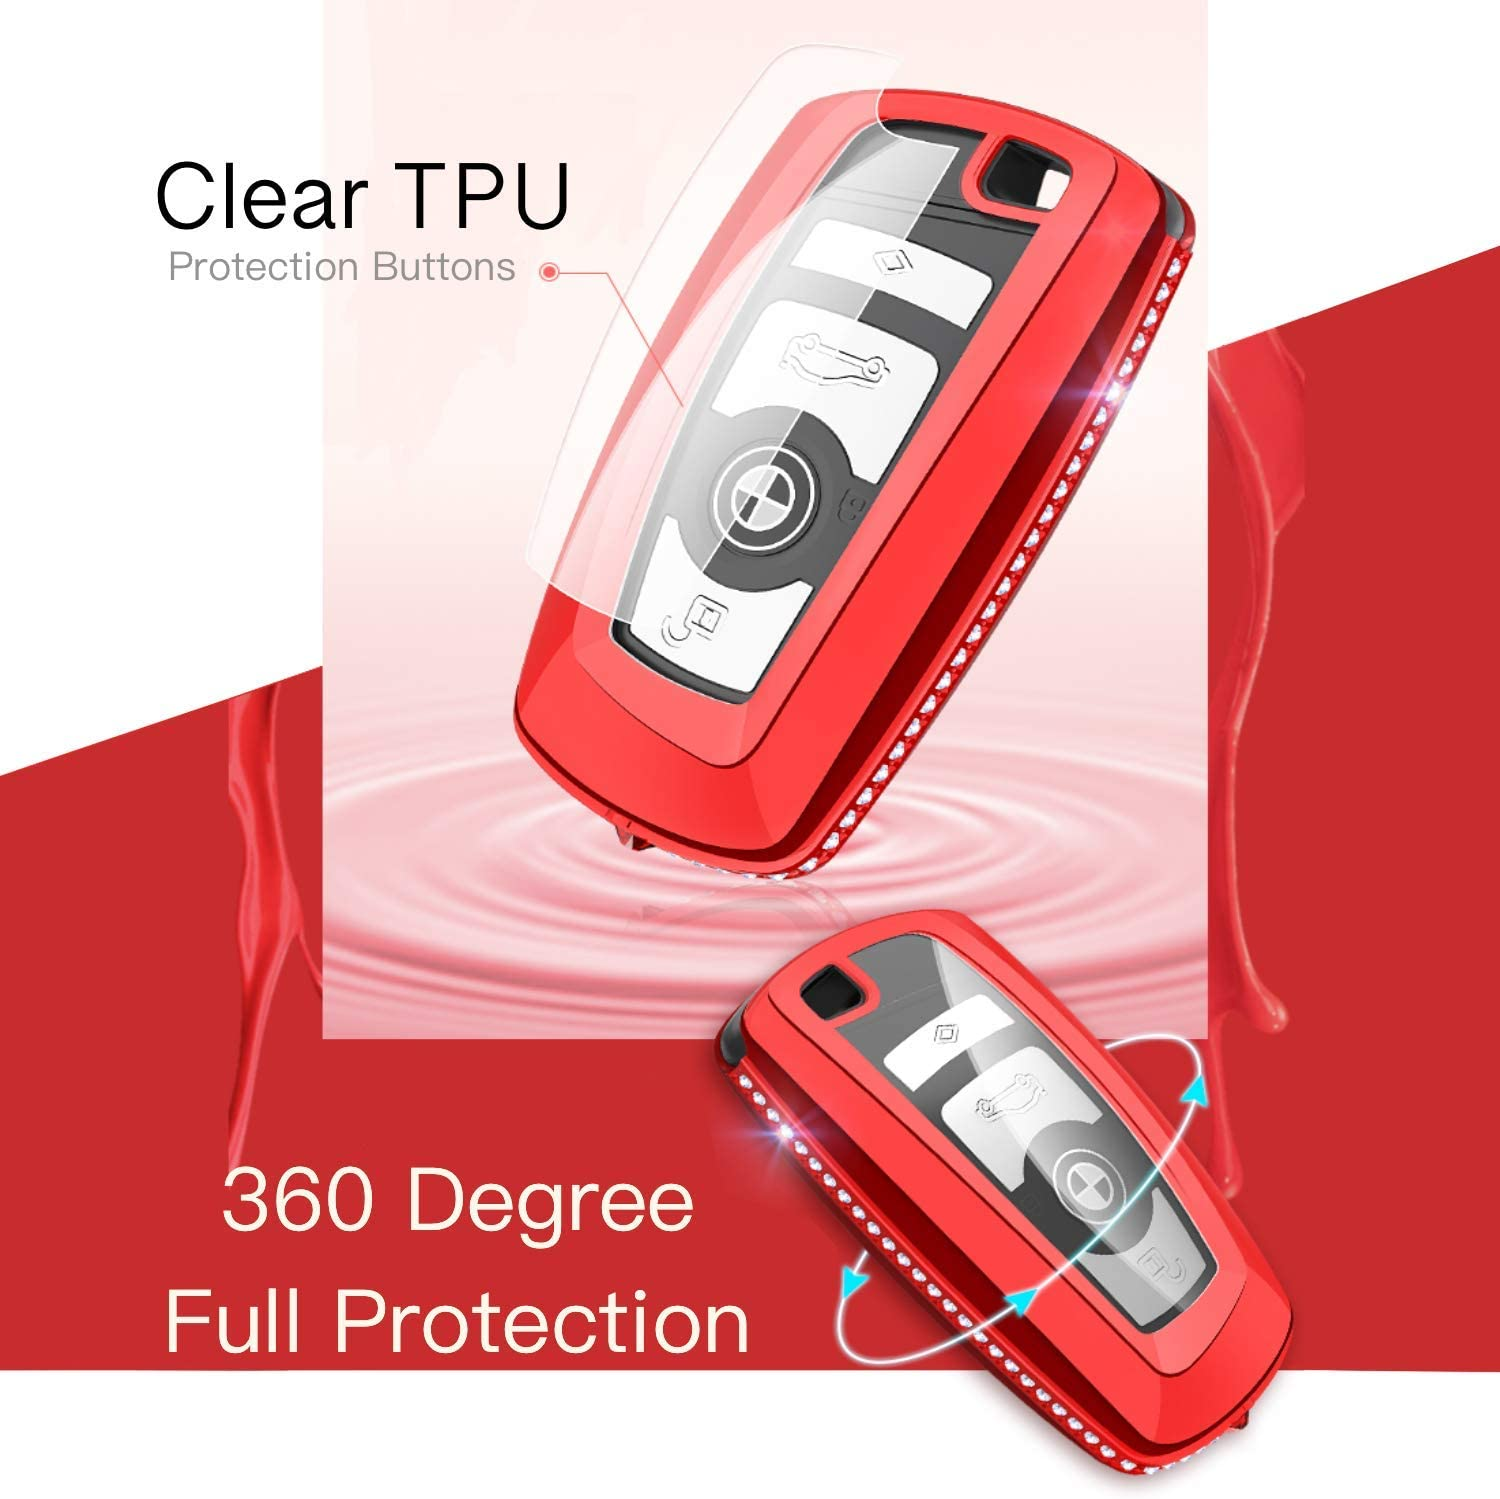 Tukellen for for BMW Key Fob Cover Diamend with Soft TPU Key Case Shell Pouch for BMW 1 3 4 5 6 7 Series and X3 X4 M5 M6 GT3 GT5 Keyless Entry Key Cover-Red